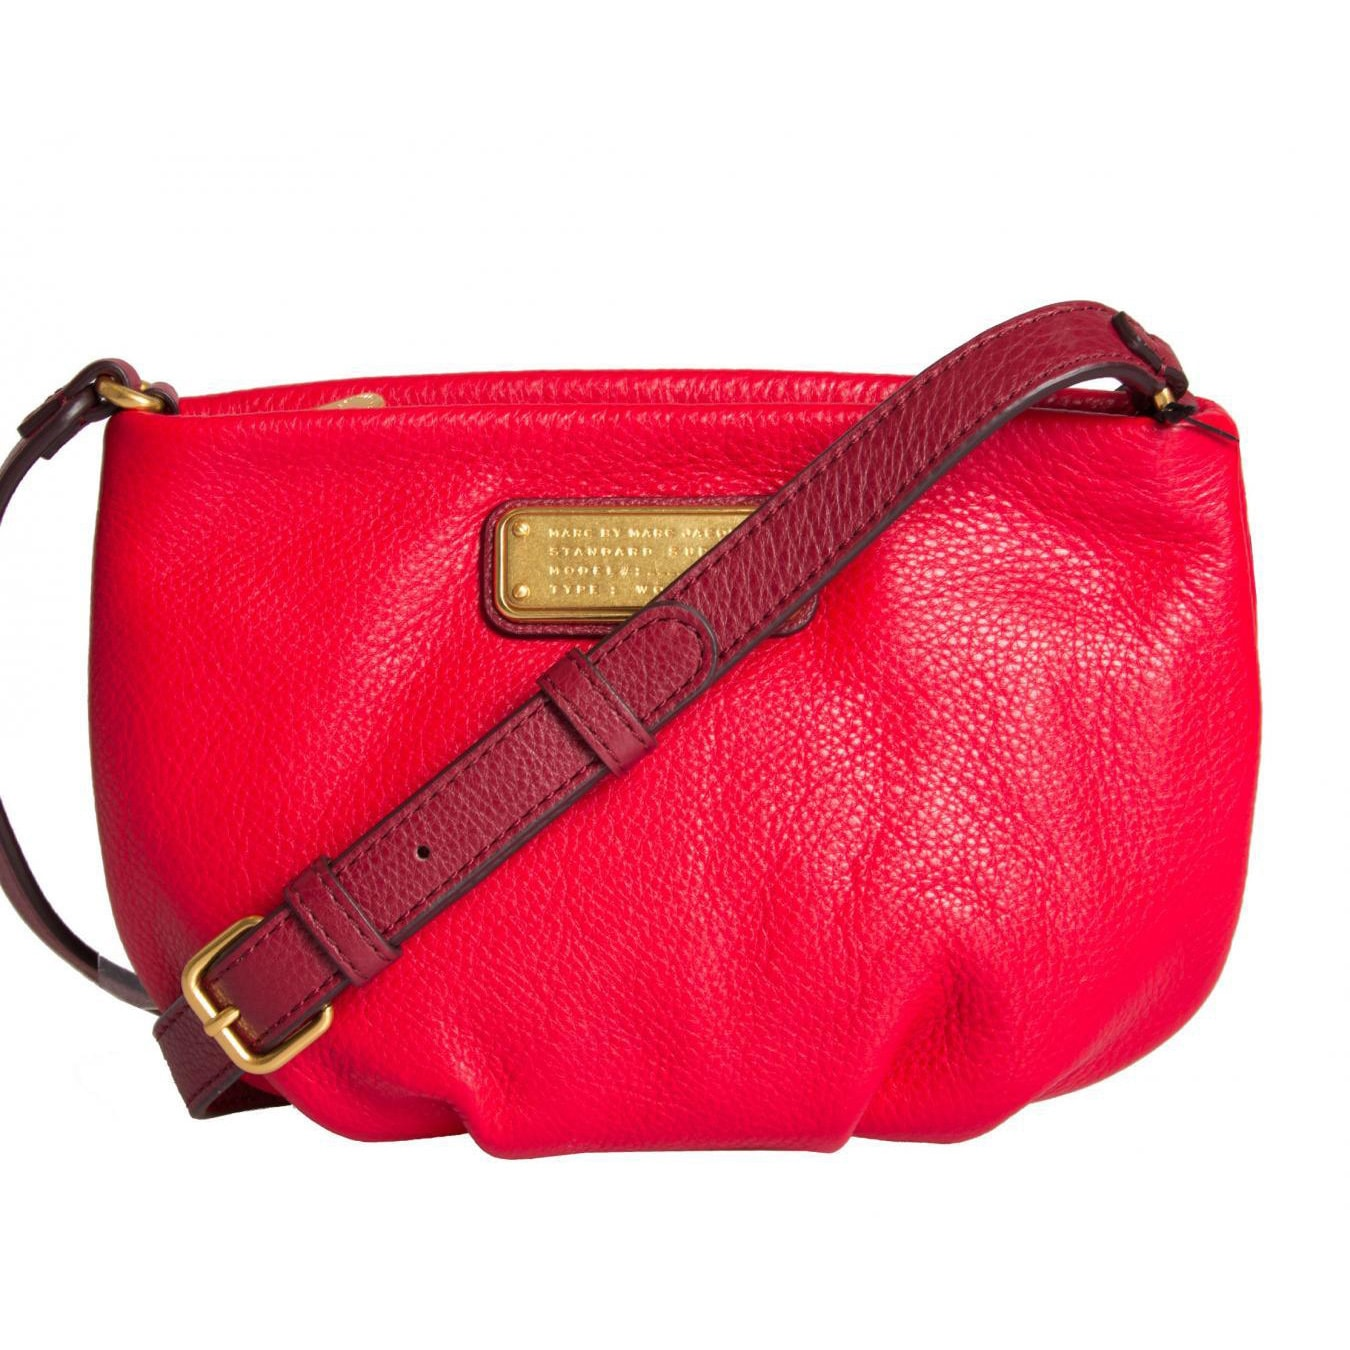 5ad853930677 Shop Marc By Marc Jacobs New Q Percy Rosey Red Multi Crossbody Handbag - On  Sale - Free Shipping Today - Overstock - 10297603